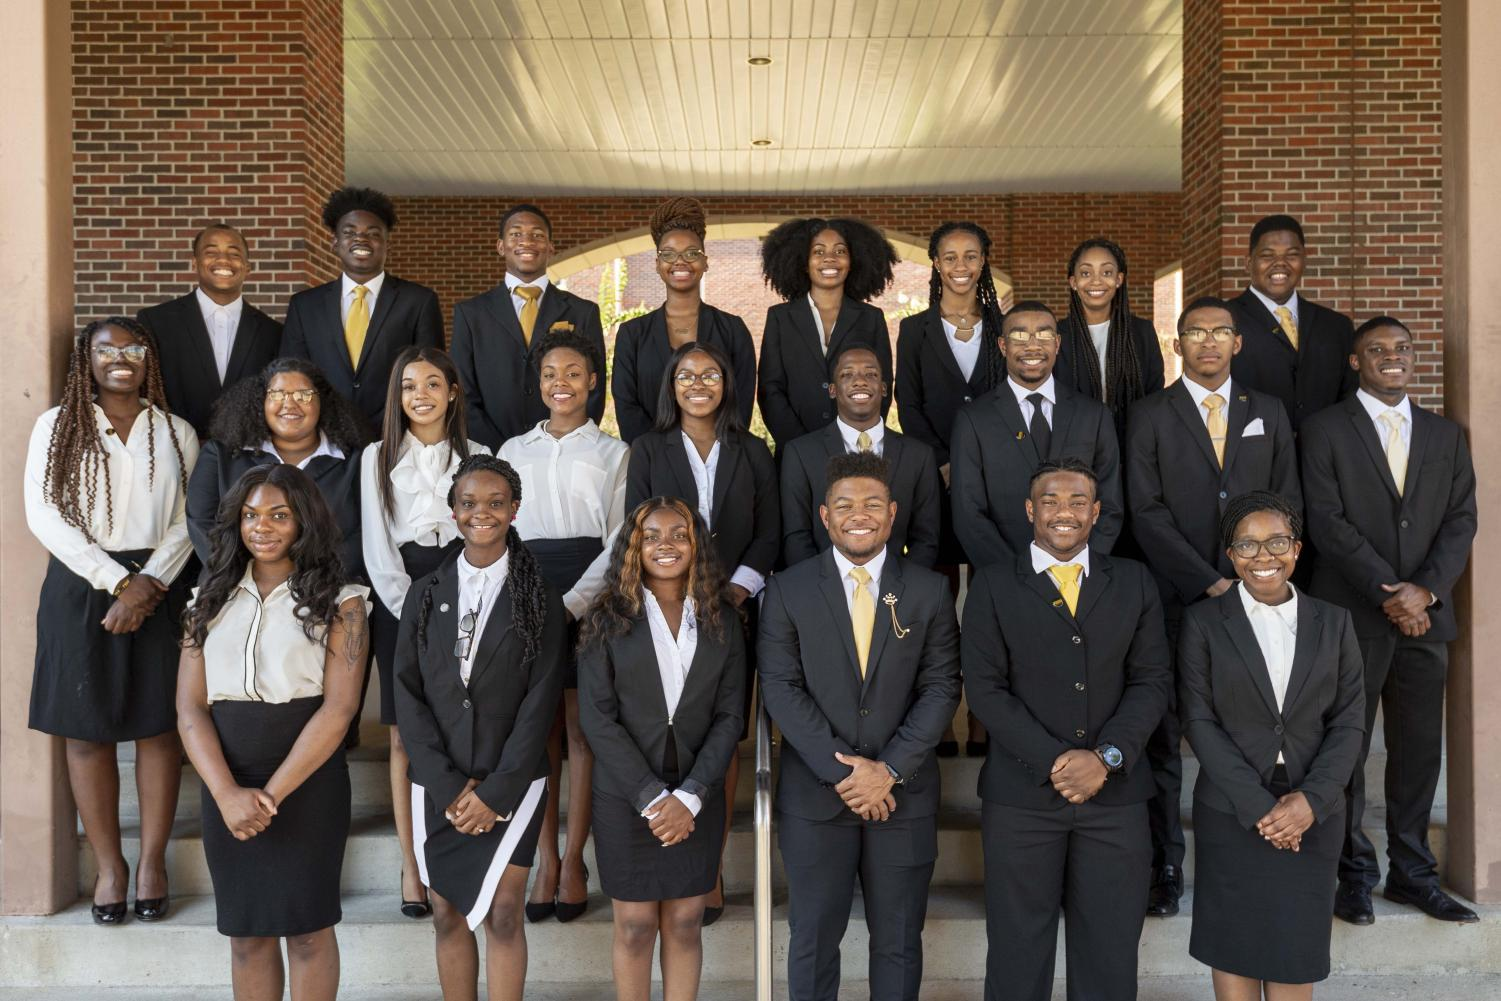 First row (L-R):  Jaylen Thomas, Janica Brooks, Morgan Lang, Jayden Sloan, Kishun Williams, Courtney Conners.  Second row (L-R): Ayanna Williams, D'Asia Lashley, Grace Dozier, Dasani Stallworth, Jeremi Moore, Curtis Watson, Dylan Stallworth, Aaron Shanks.  Third row (L-R):  Amir McKinstry, Desmond Paster, Austtin Poindexter, Monet Jenkins, Mariah Turner, Haven Primm, Celeste Frazier, Patrick Evans